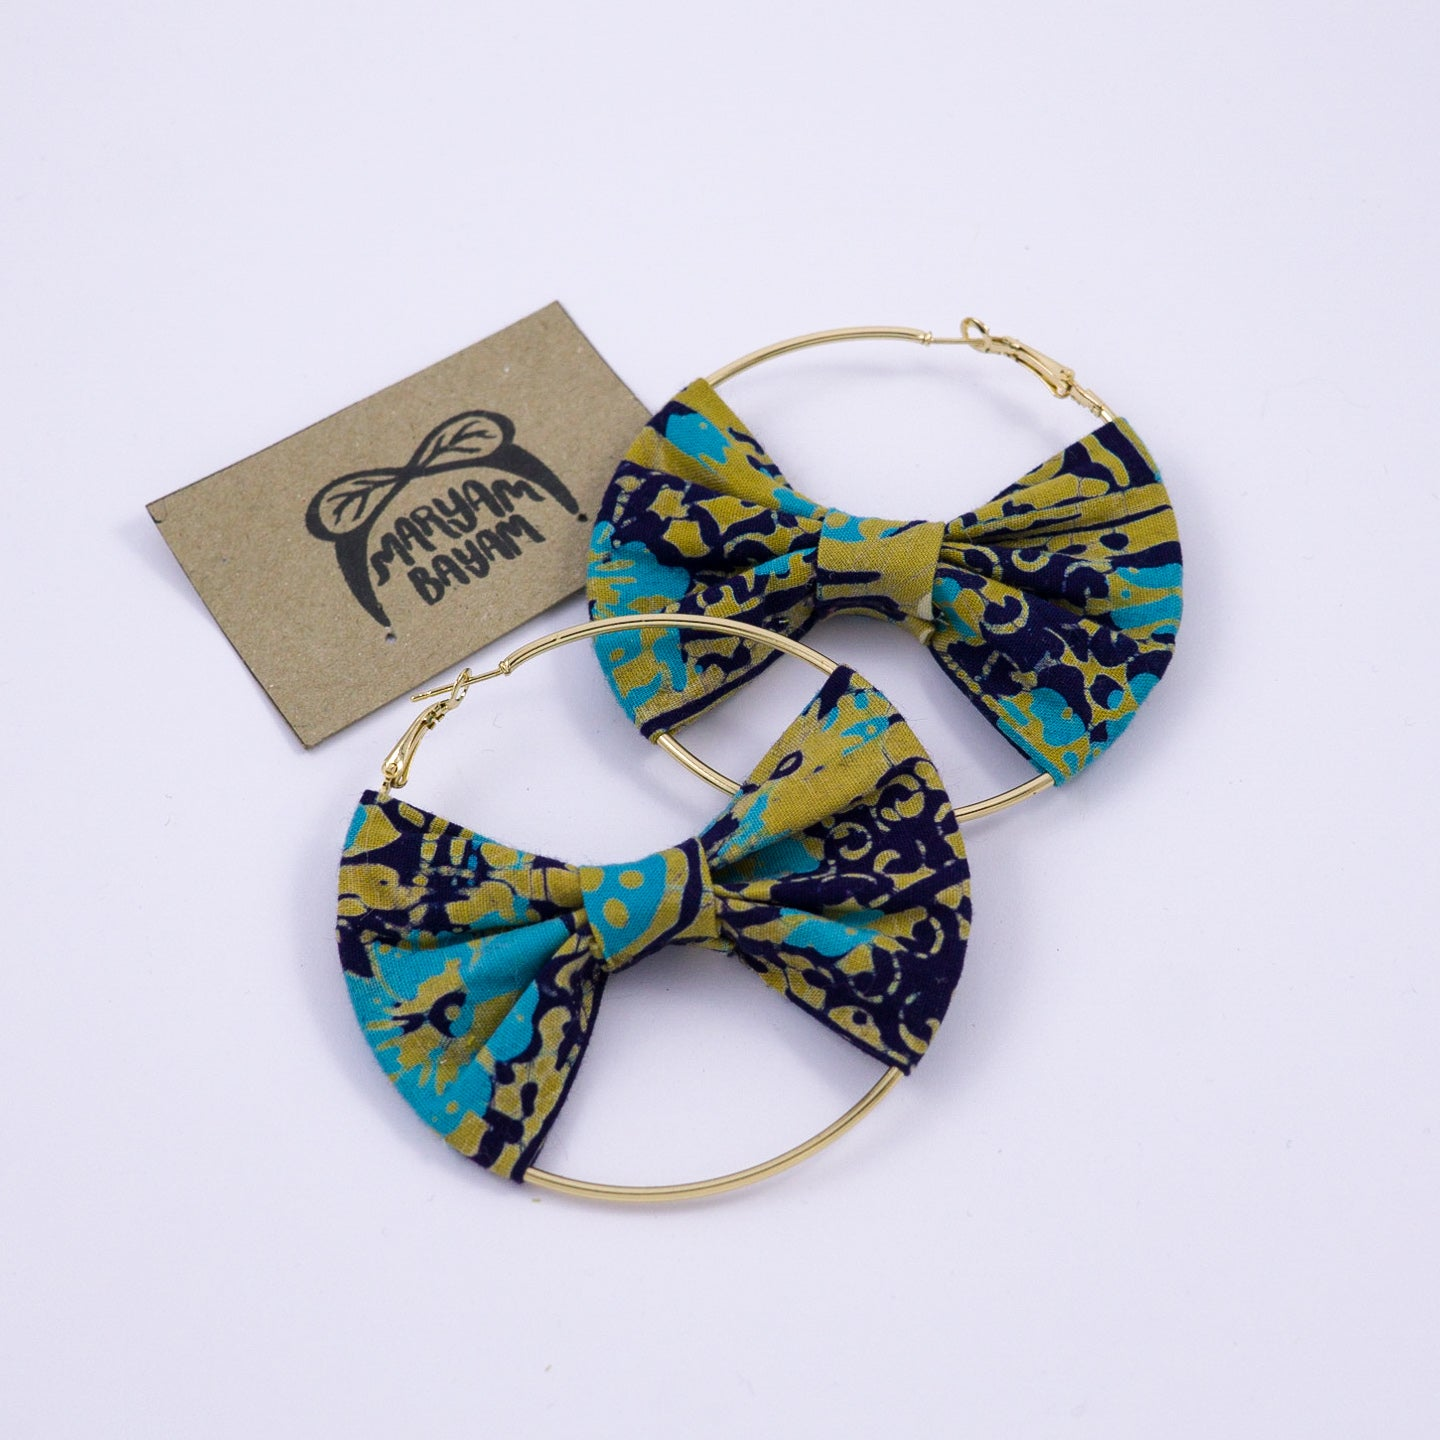 RHEA Batik Bow Hoops - MaryamBayam – Better in Batik